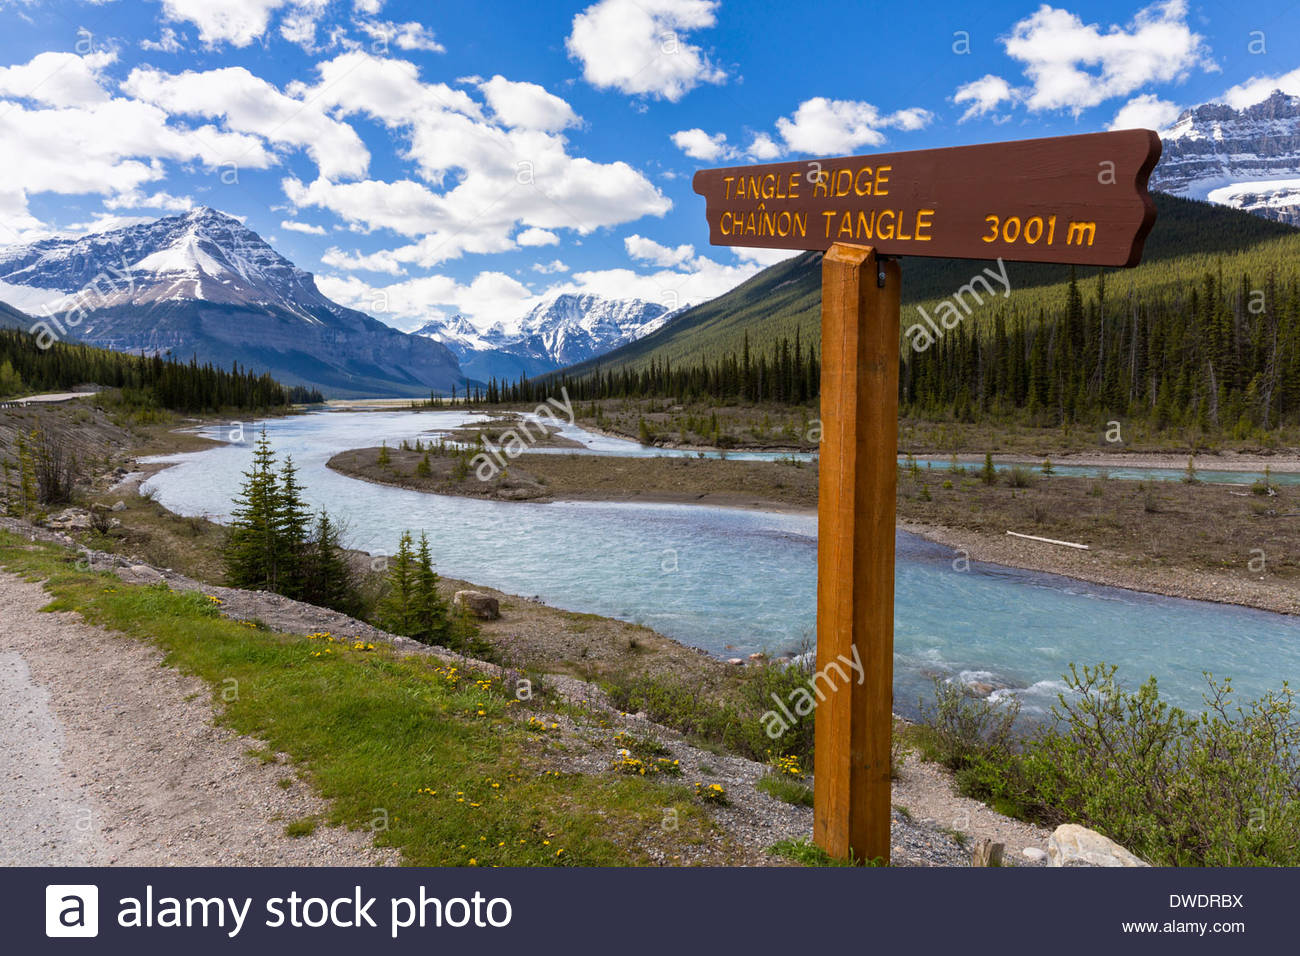 Canada, Alberta, Jasper National Park, Banff National Park, Icefields Parkway, sign at Athabasca River - Stock Image